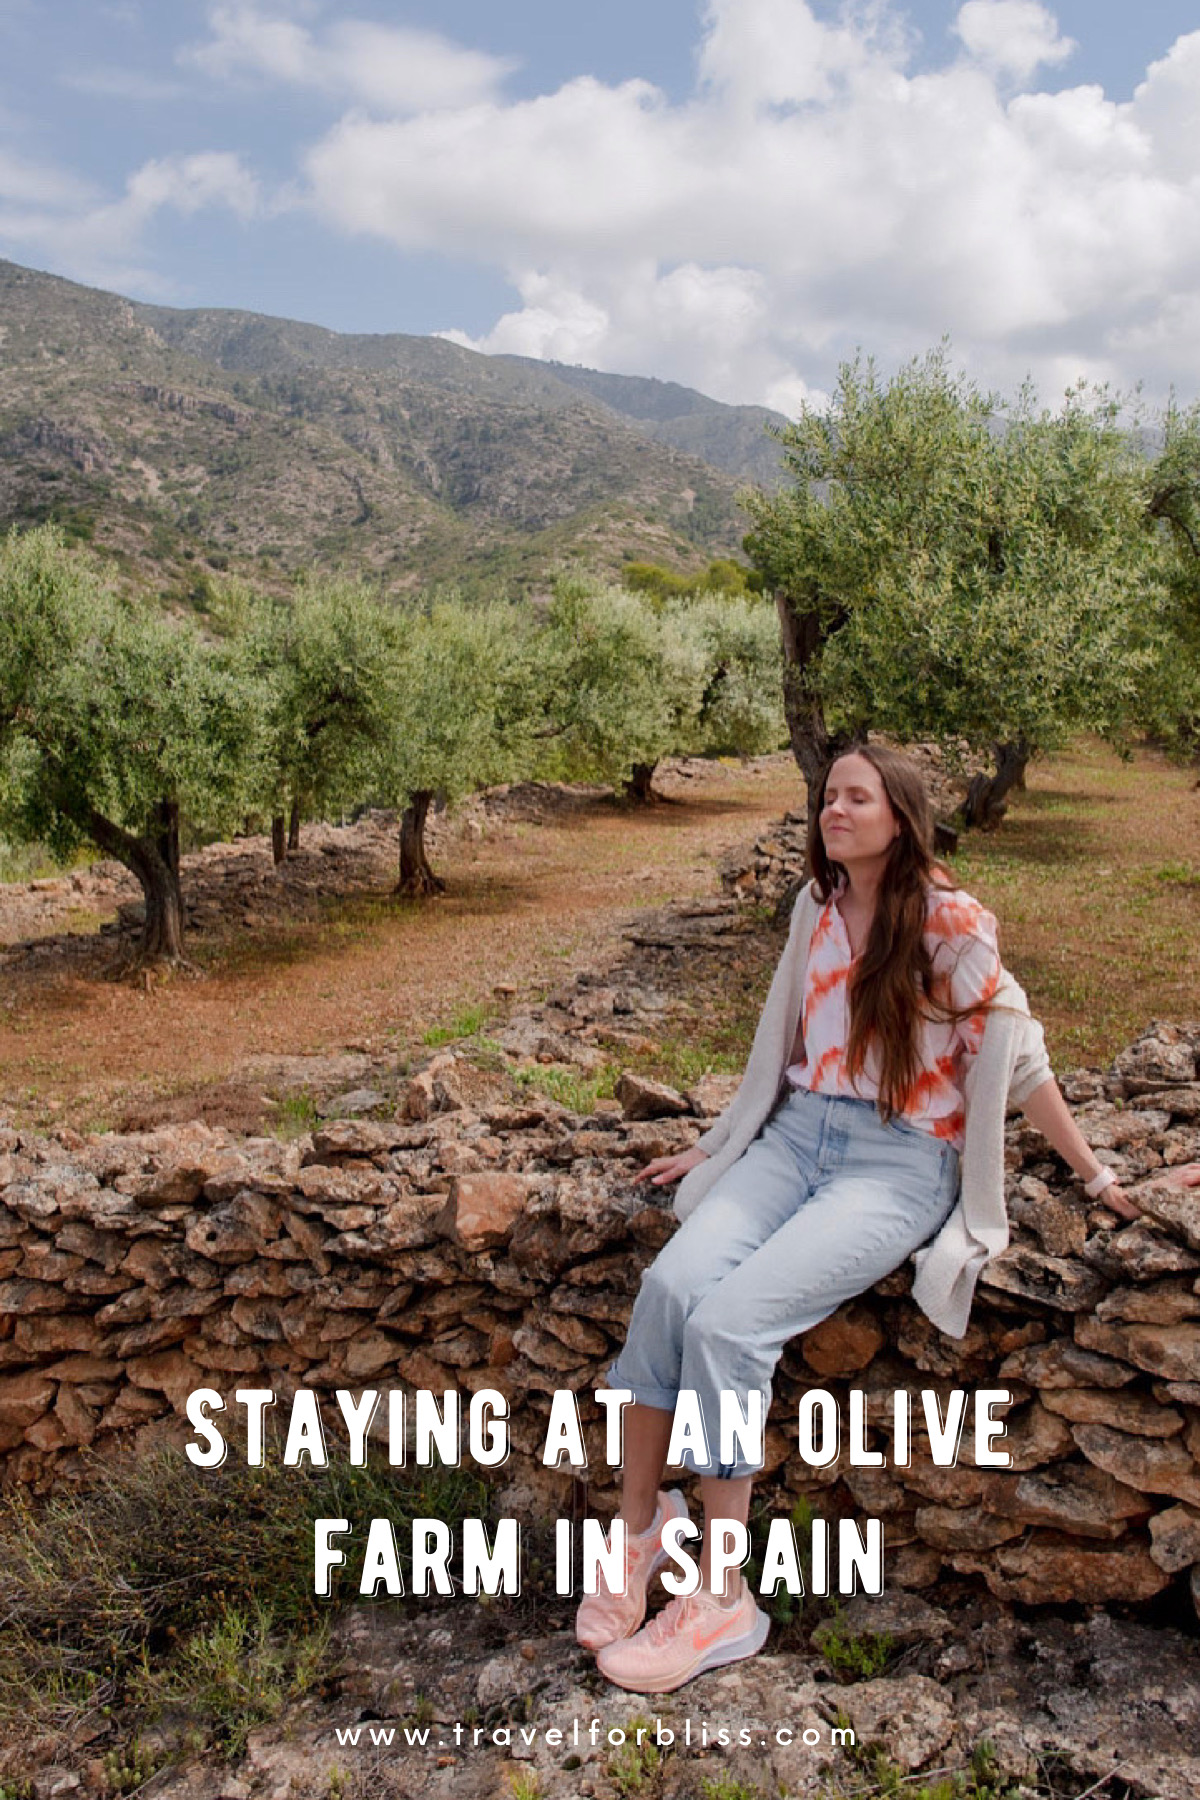 Staying at an olive farm in Spain